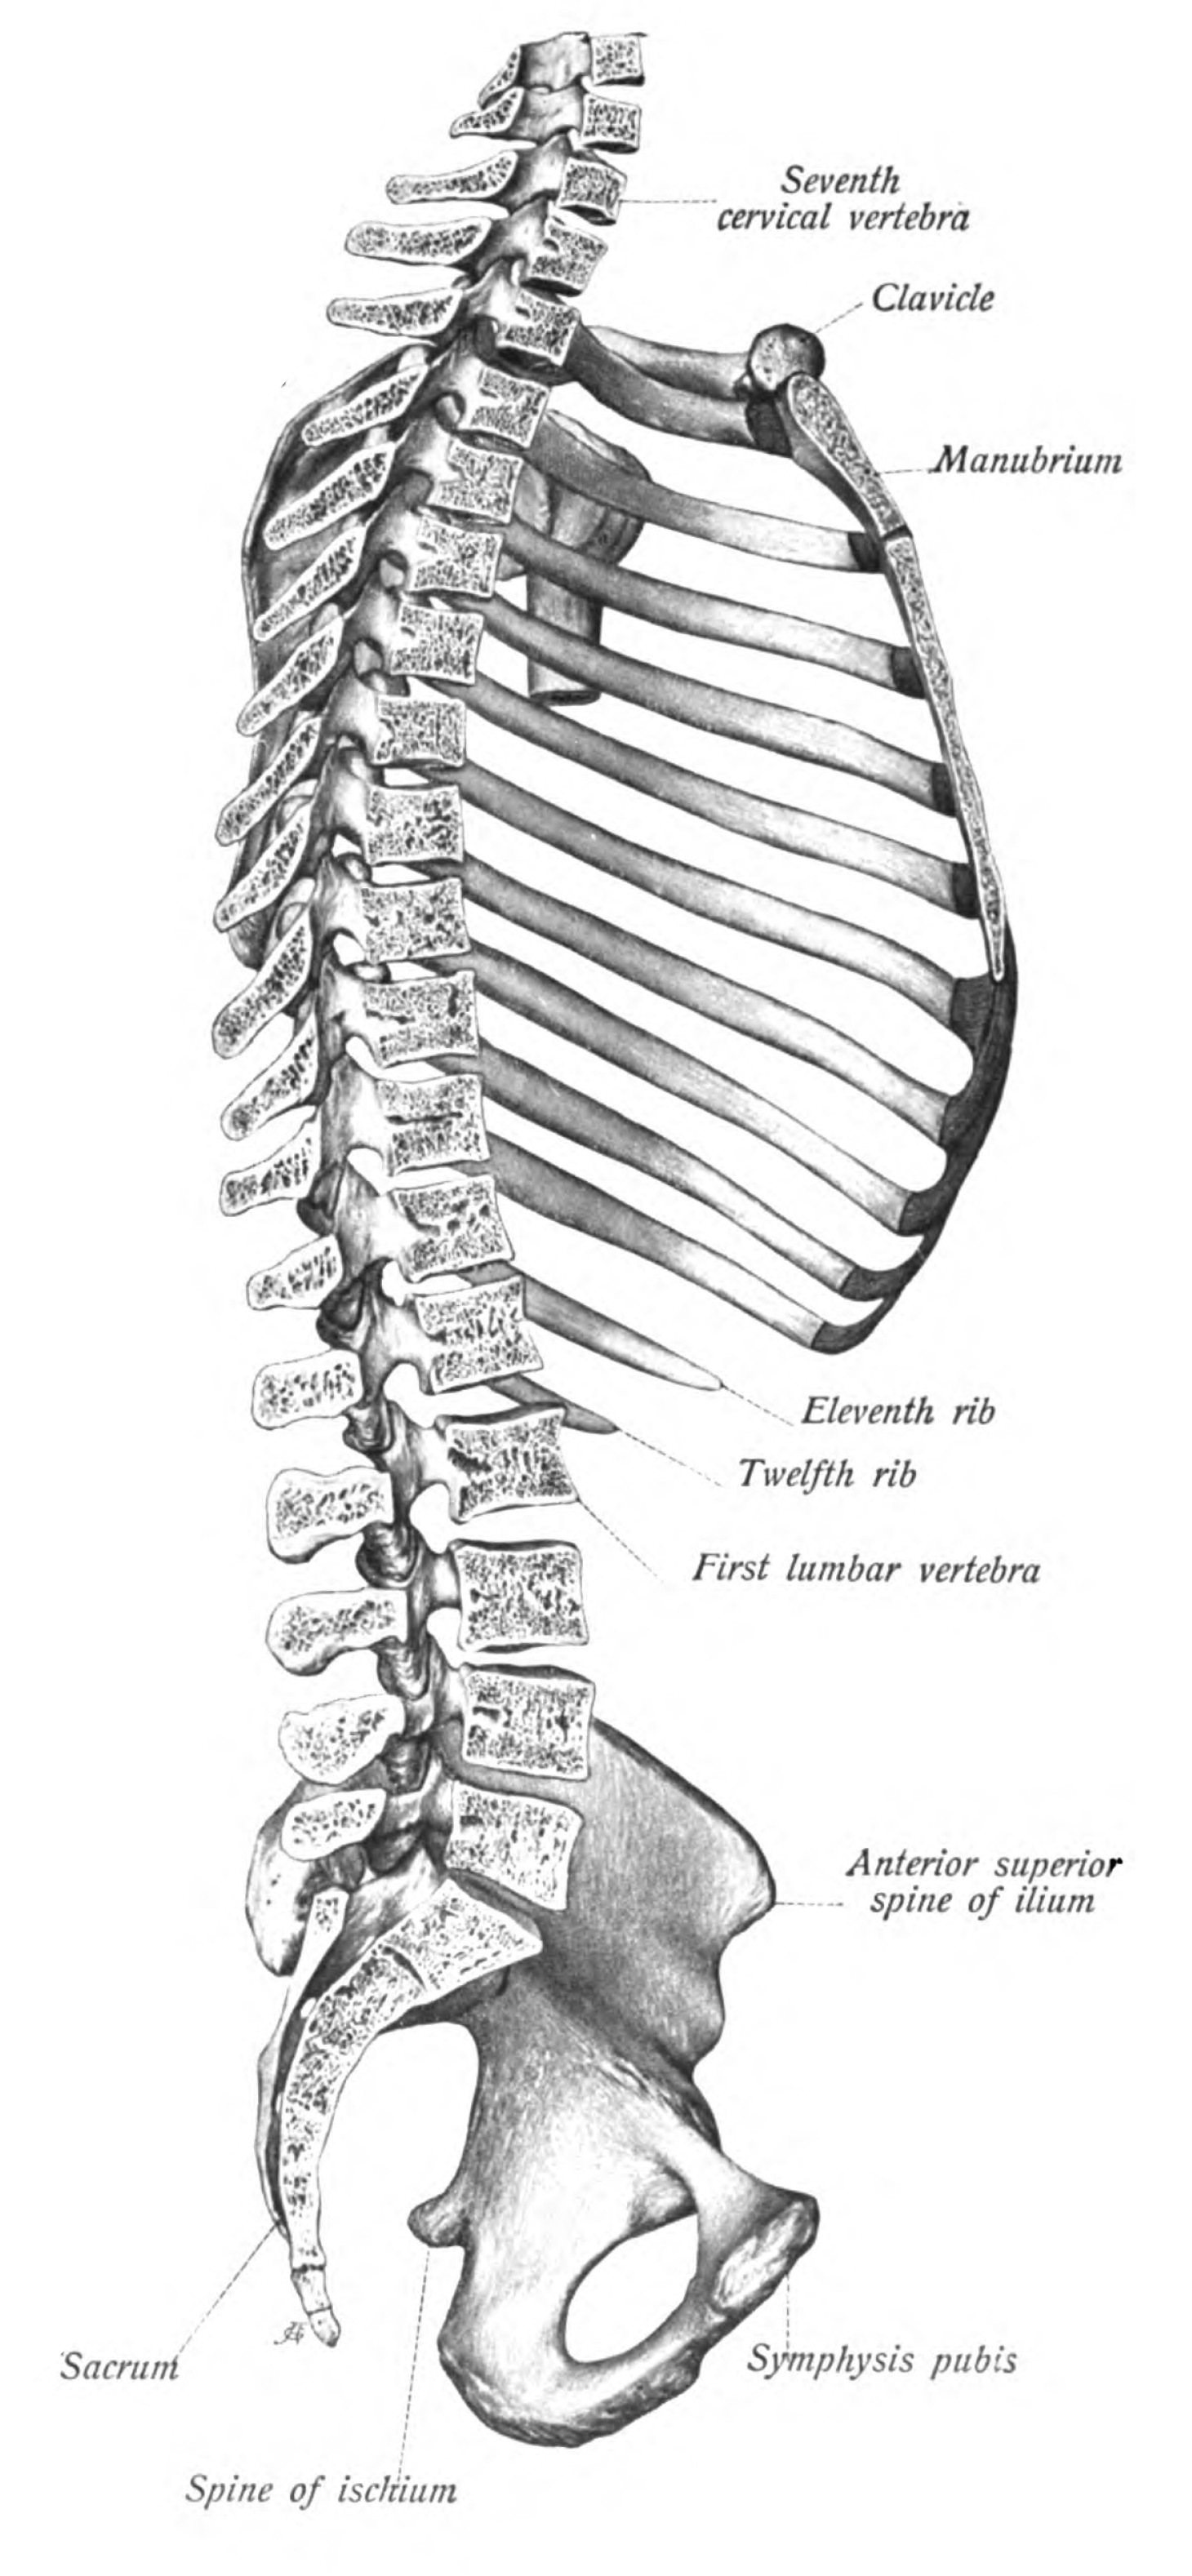 axial skeleton skull diagram human brain and functions spinal injury going pro rebecca frech